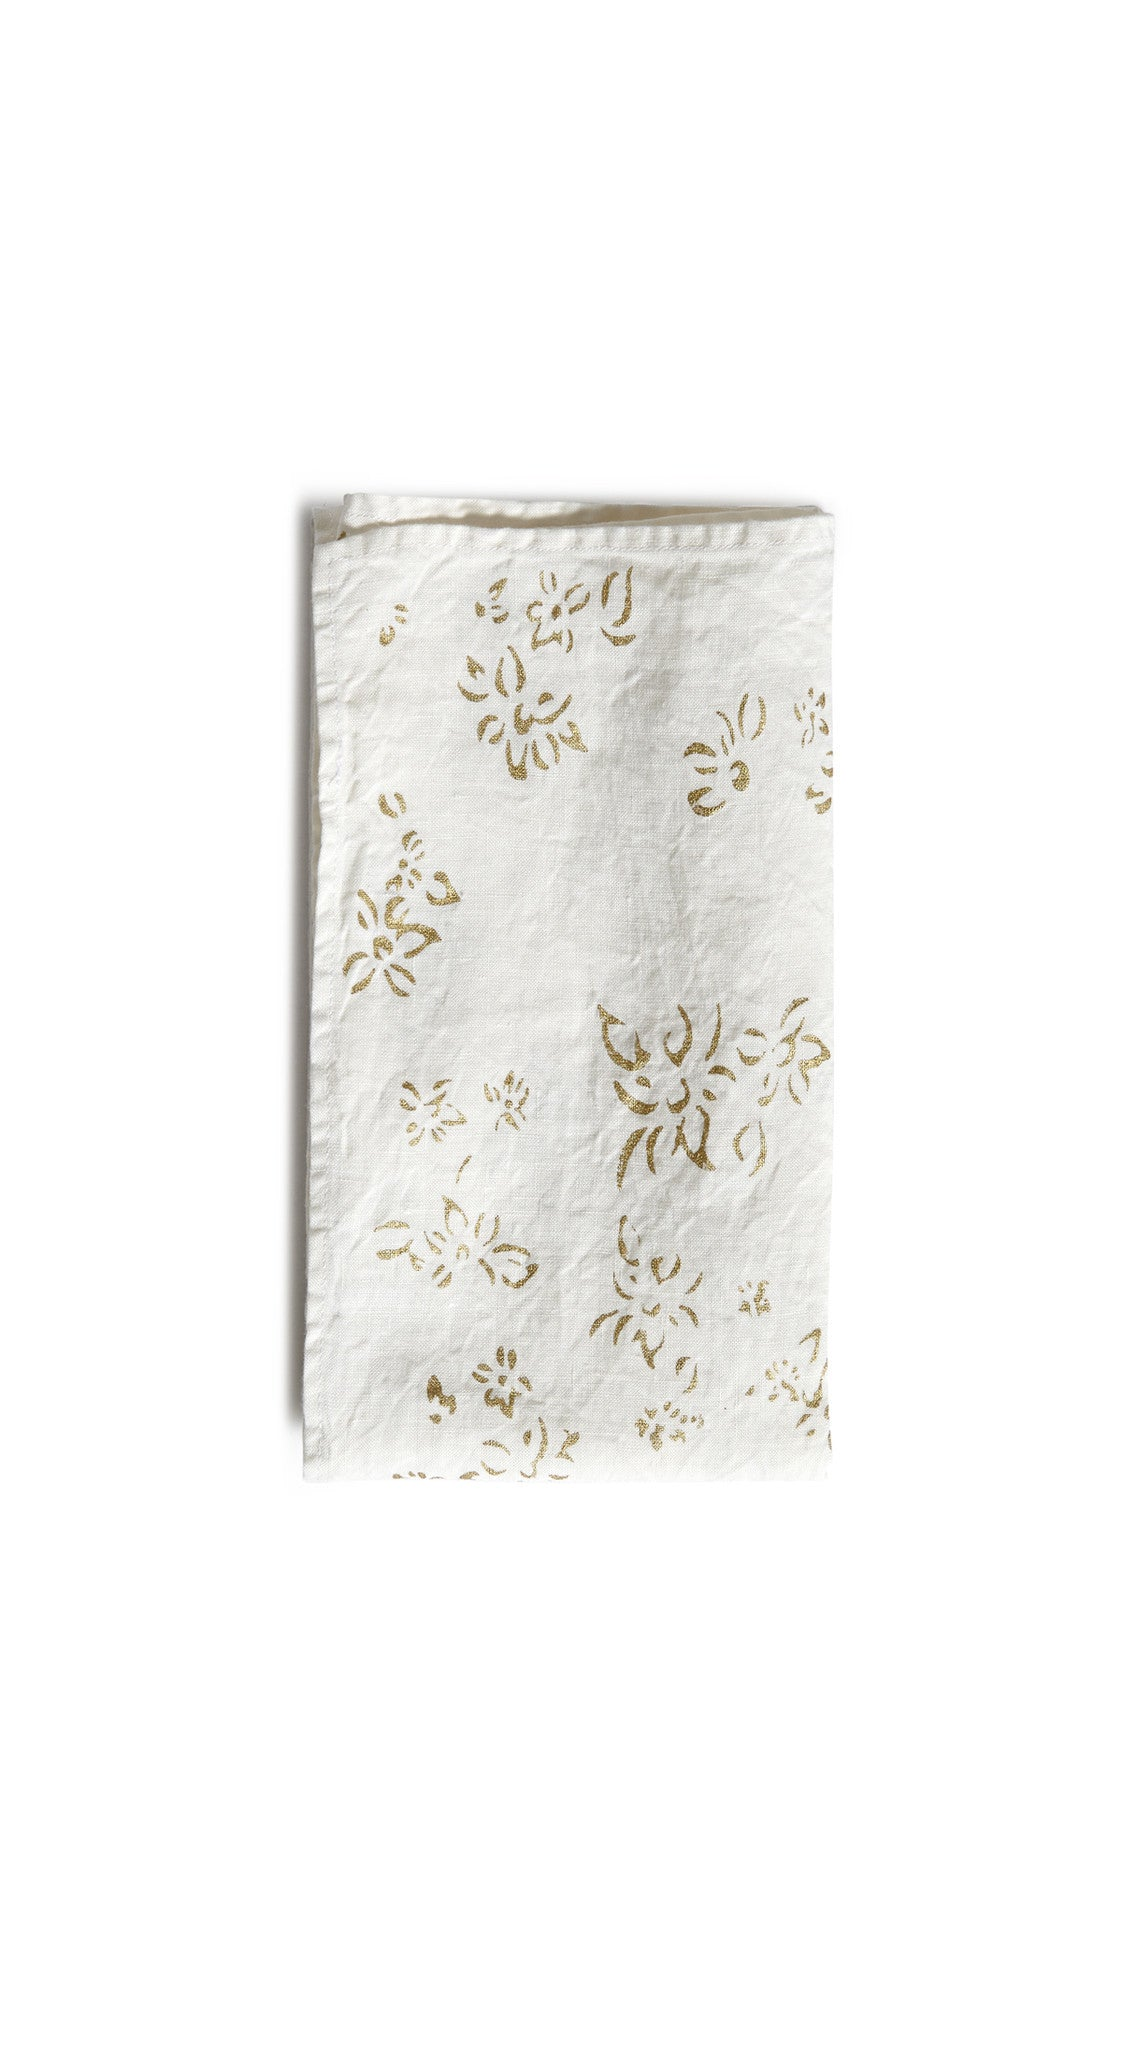 Bernadette's Falling Flower Linen Tea Towel in Gold